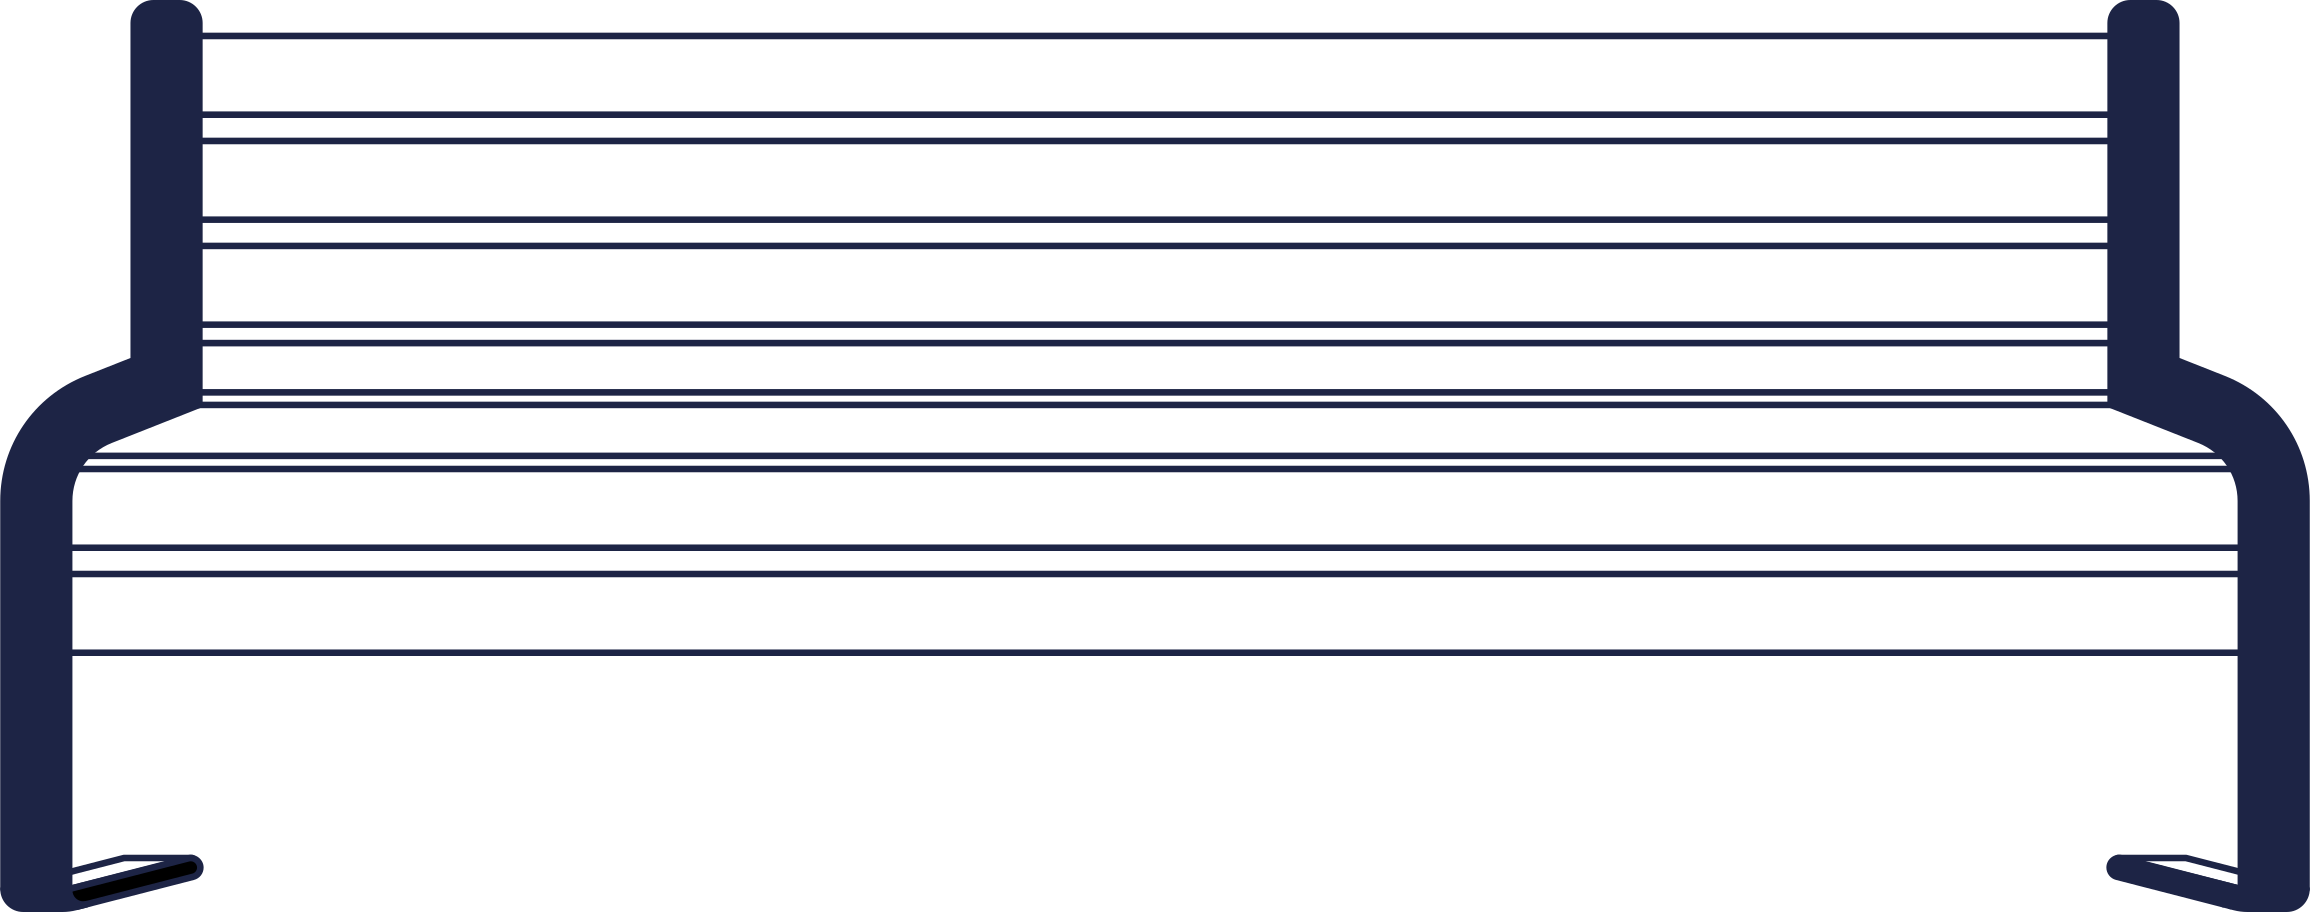 no connection  bench line Clipart illustration in PNG, SVG